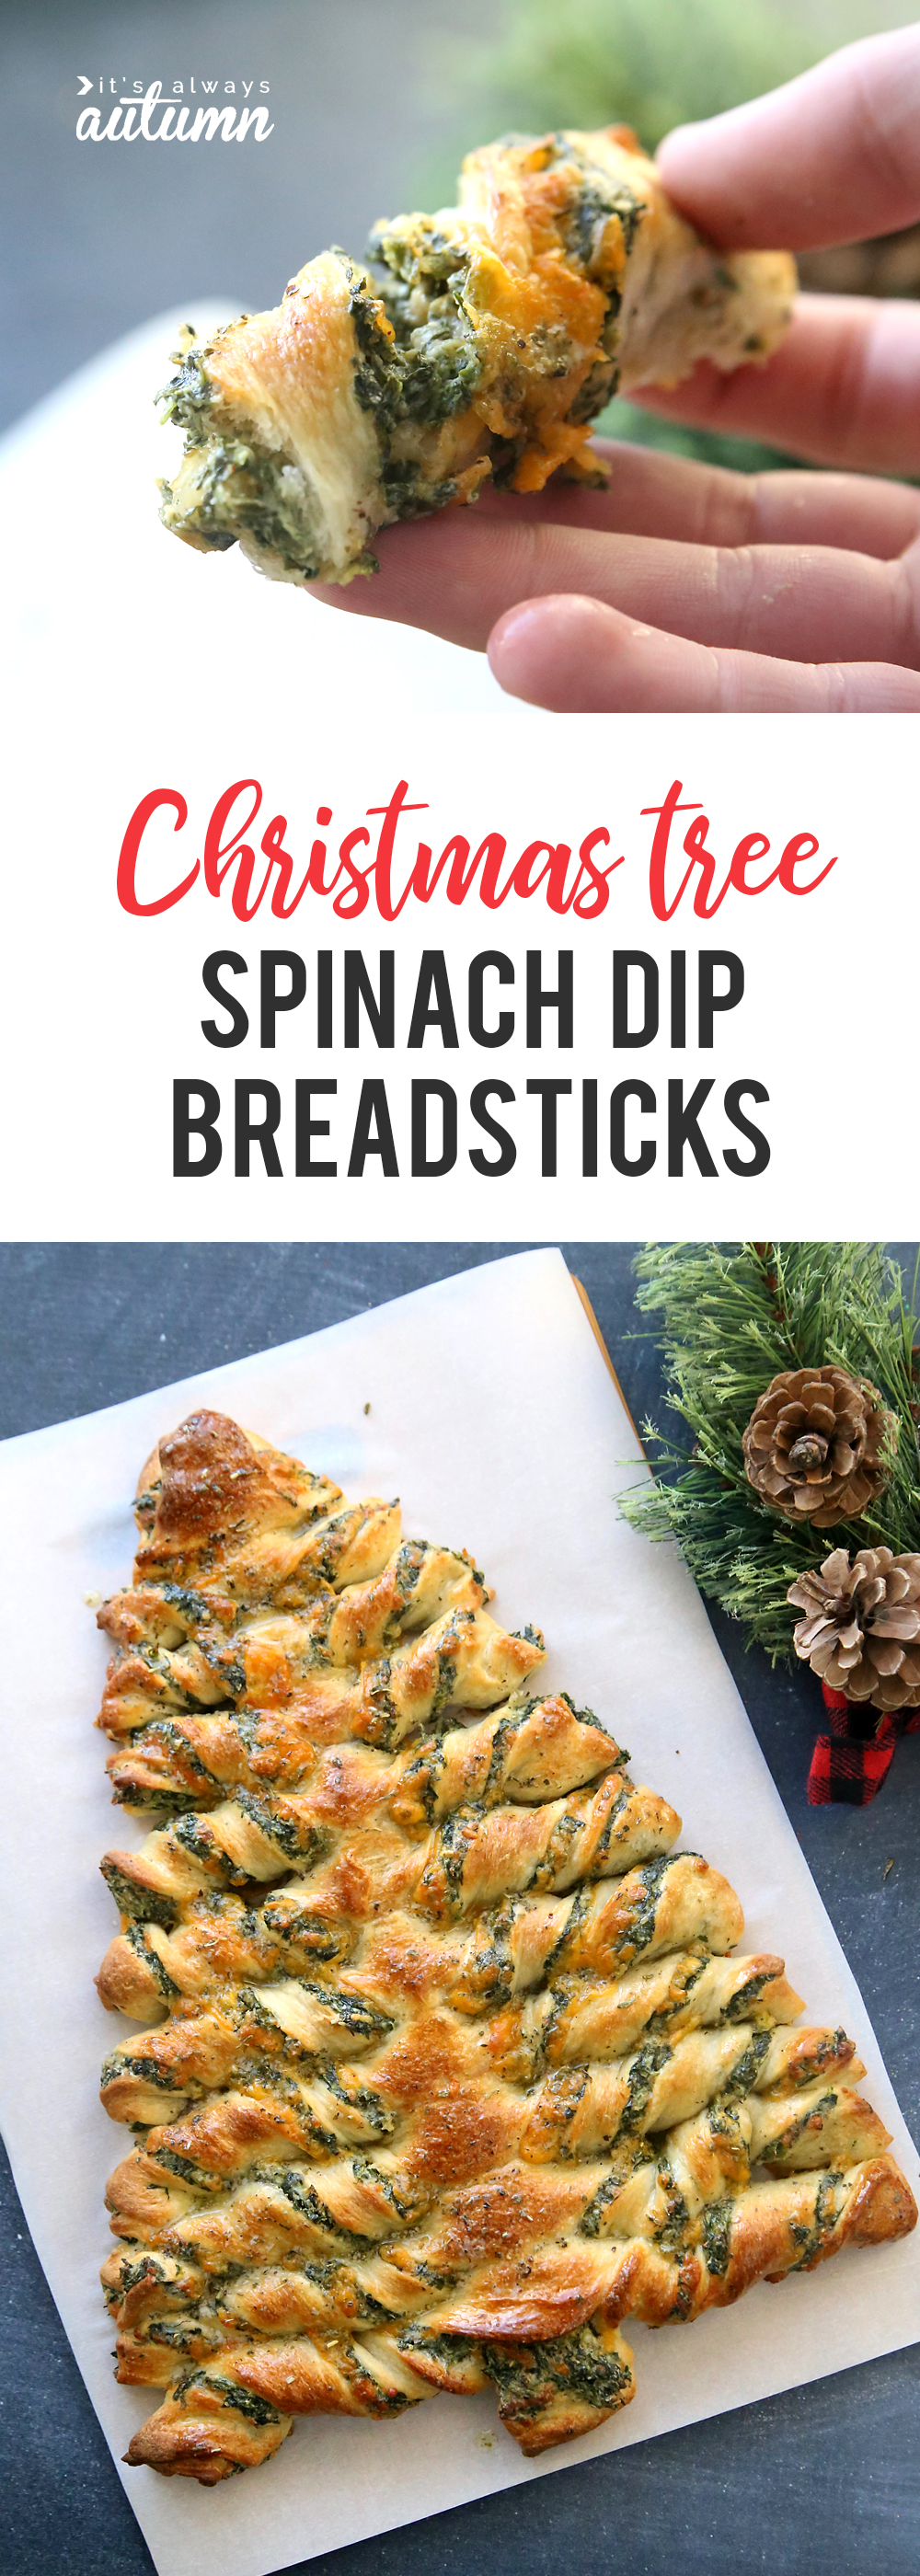 Christmas tree breadsticks it. Appetizers clipart spinach dip